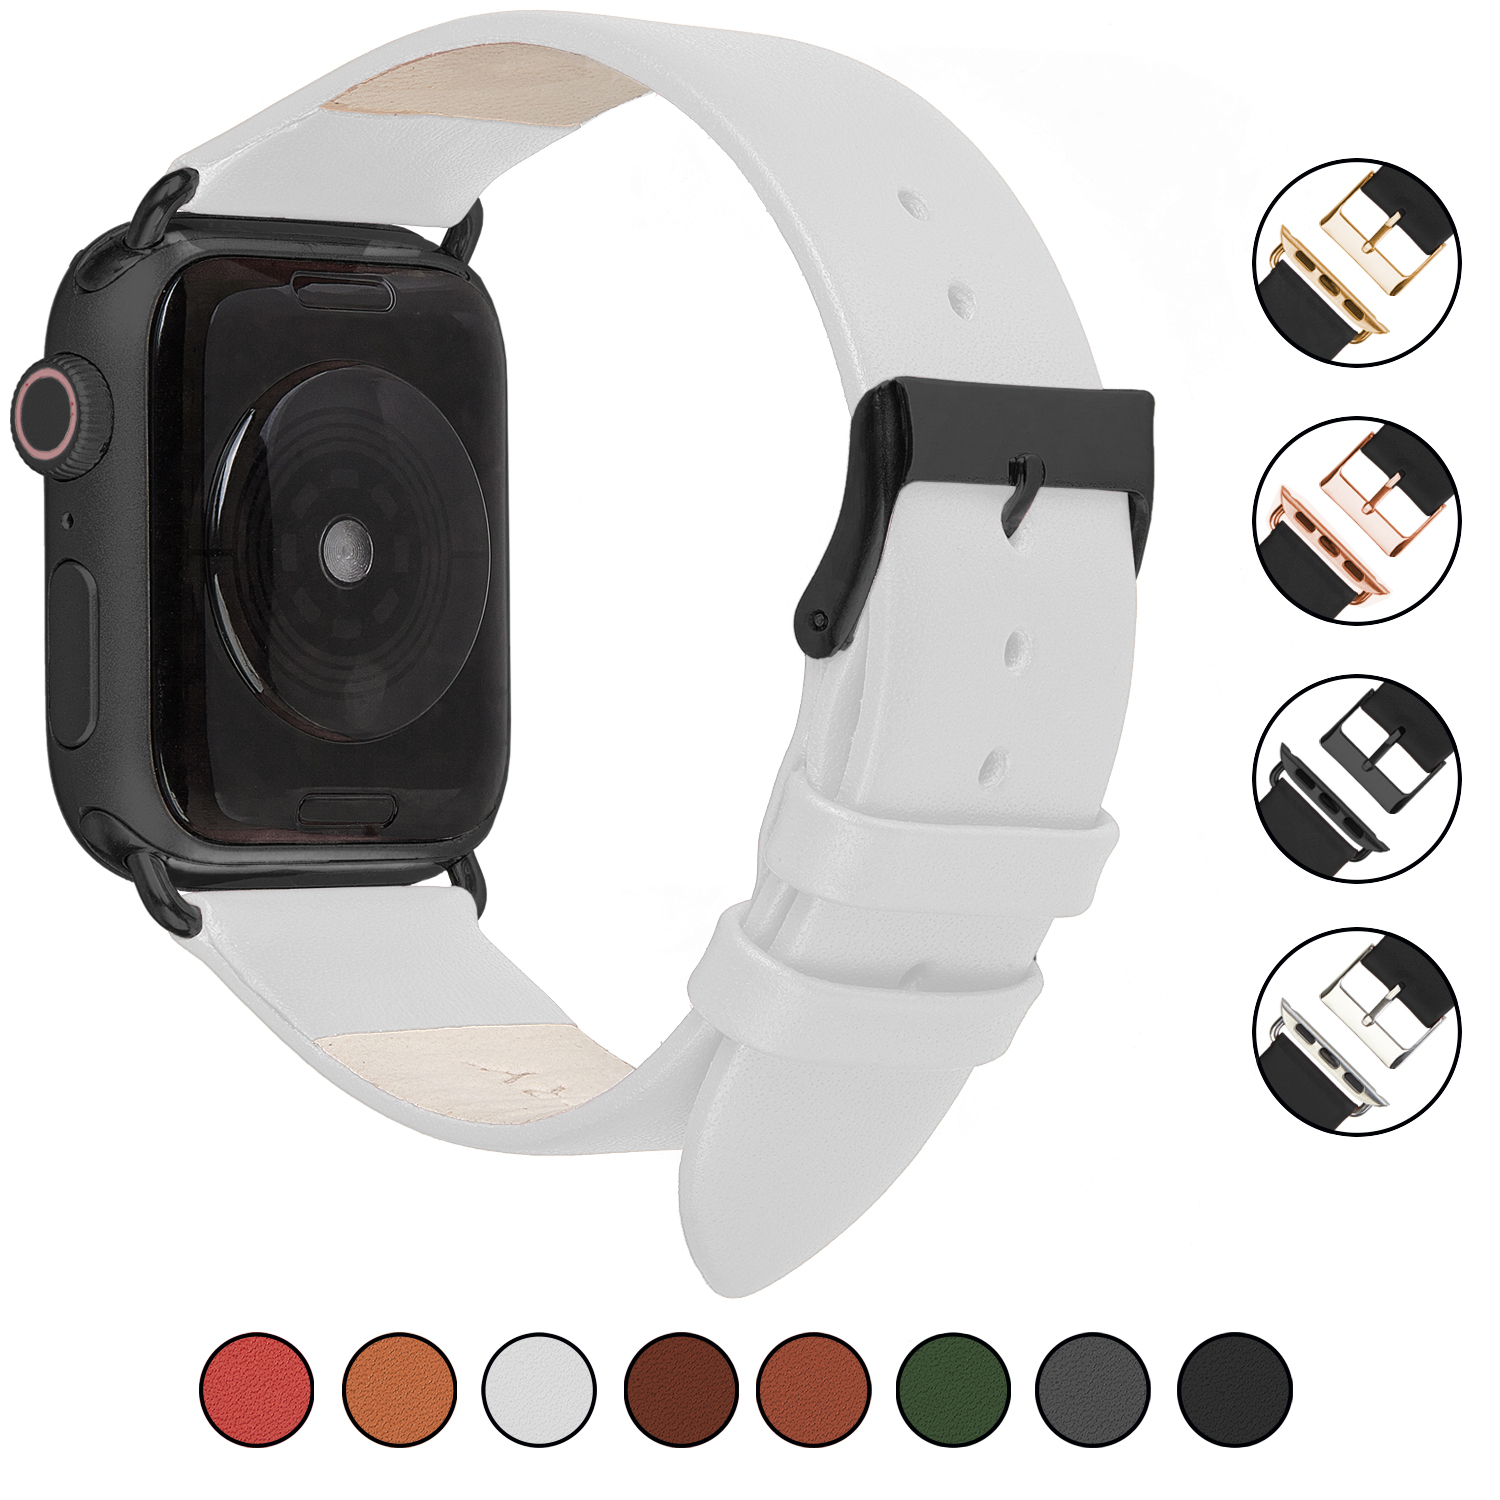 Wildery Leder Armband für Apple Watch Series 1/2/3 und 4/5 in weiß